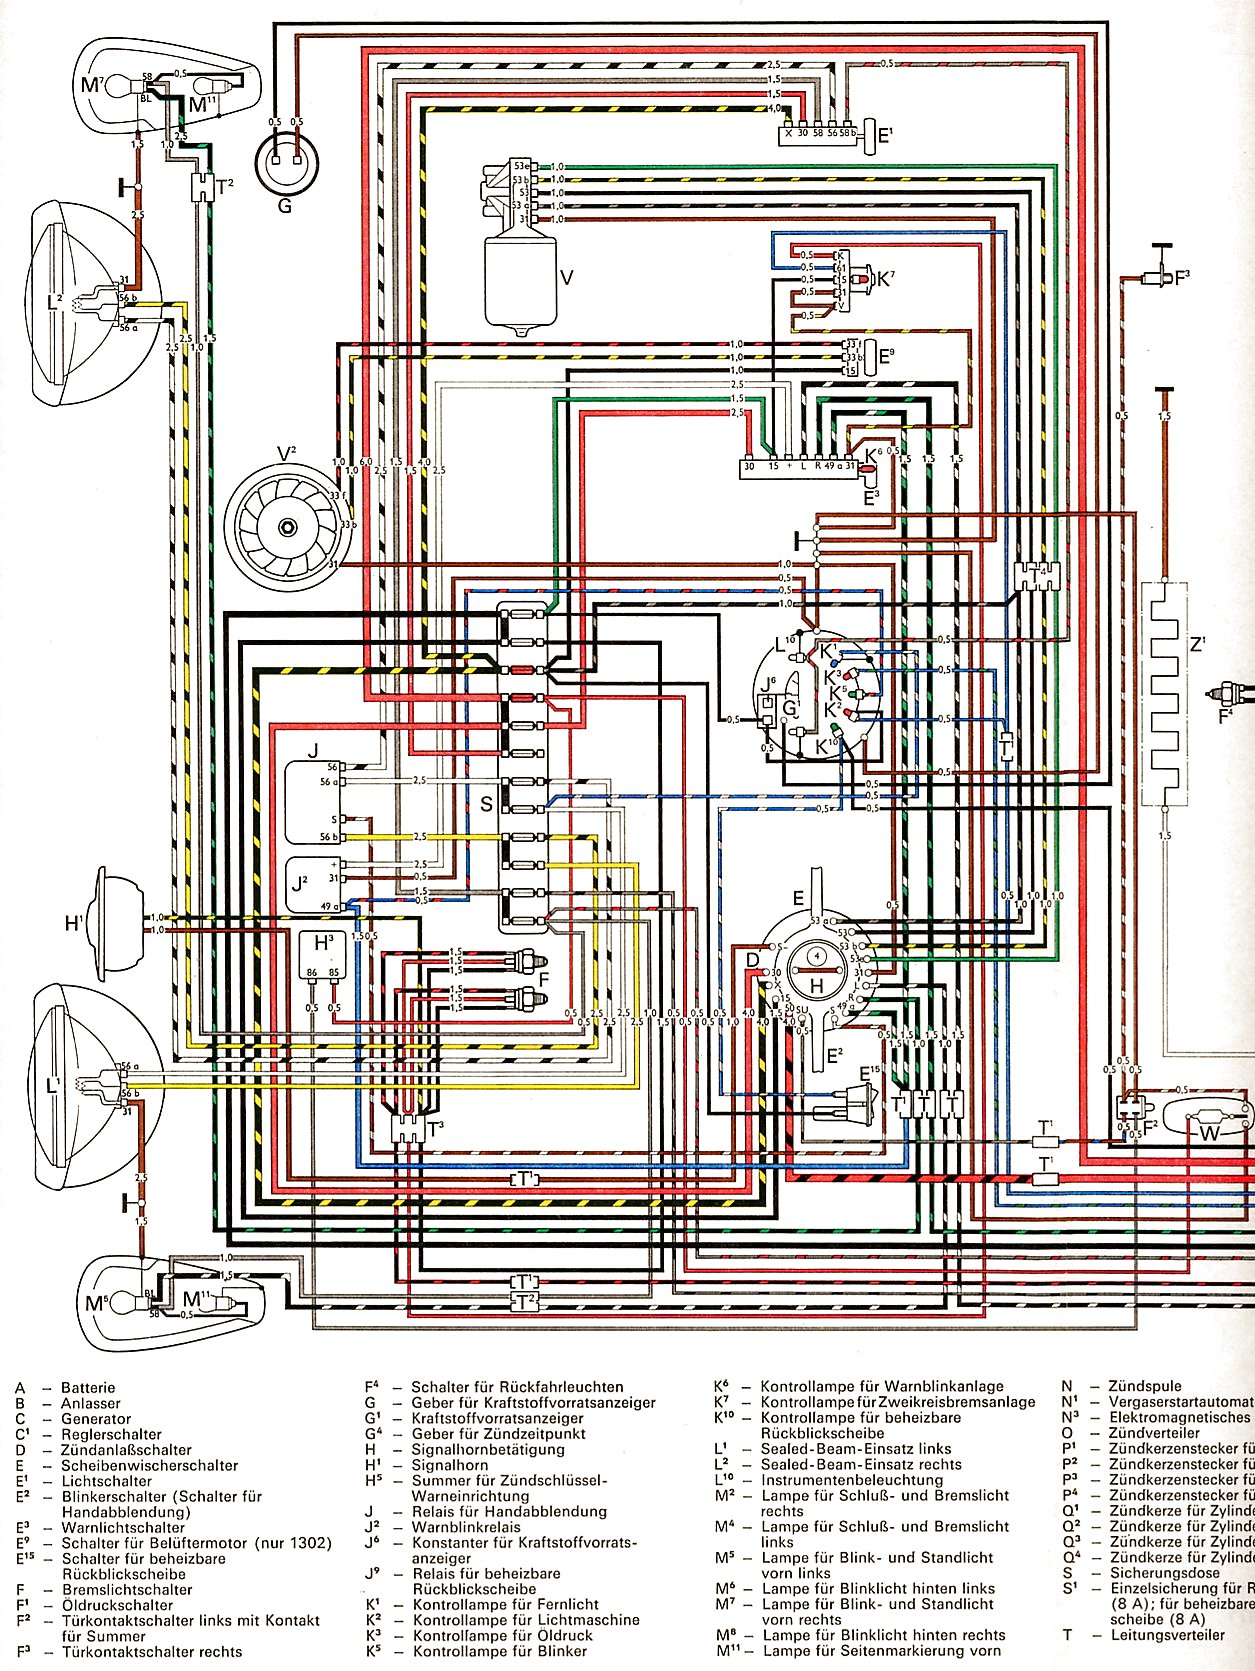 1300_and_1302_USA_from_August_1971 1 vw beetle wiring diagram 1974 1973 vw beetle wiring diagram 1982 Jeep CJ7 Wiring-Diagram at aneh.co